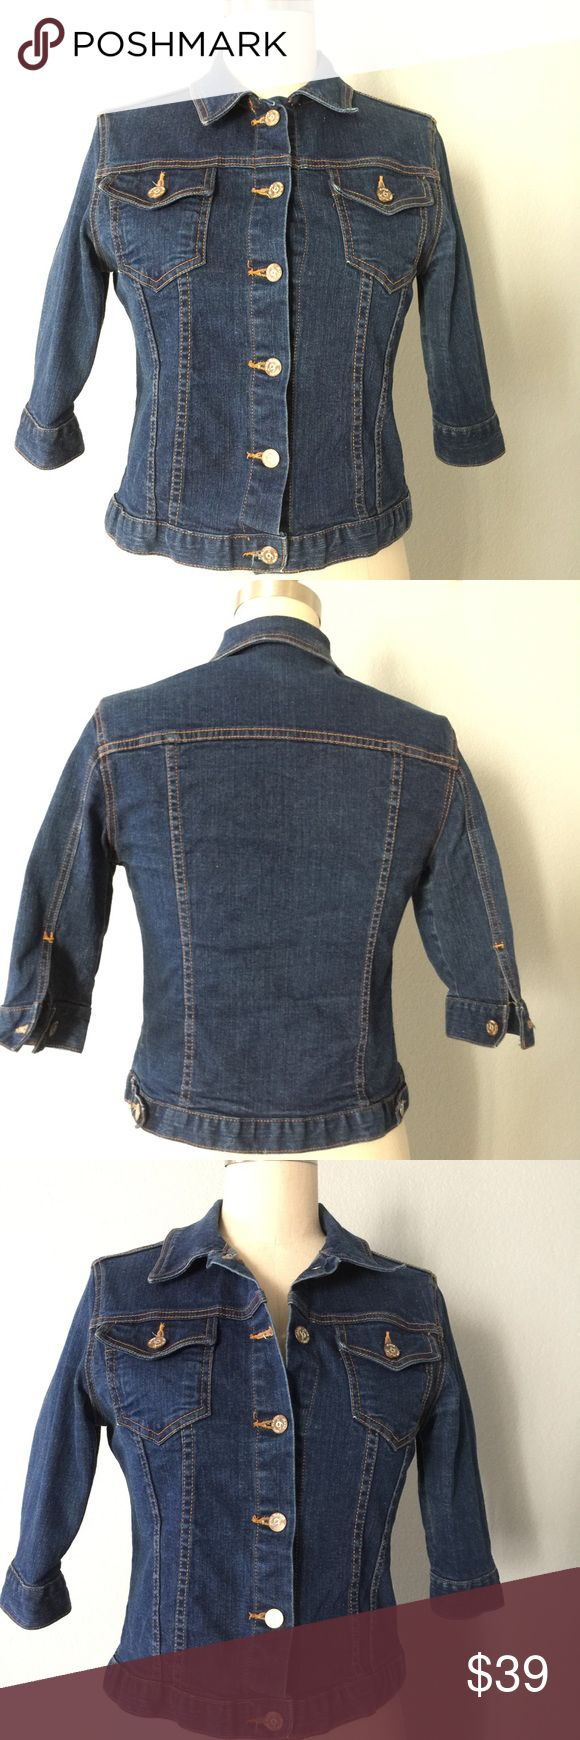 Jean jacket Great vean top, wear it as a little jacket or a regular top. 💯 soft cotton, 2 front button pockets, 3/4 sleeves with button closures, button down front. Perfect for fall 🙌🏼 juniors Large or a woman's size 6 ✅ will bundle 👌🏼✅🚭 ✅ all reasonable offers will be considered 👍🏼 🚫No Trading 🙅🏻 Poshmark rules only‼️ 📝Measurements taken laying flat Ⓜ️ Chest 18 Ⓜ️ Length 20 nine planet jeans  Jackets & Coats Jean Jackets